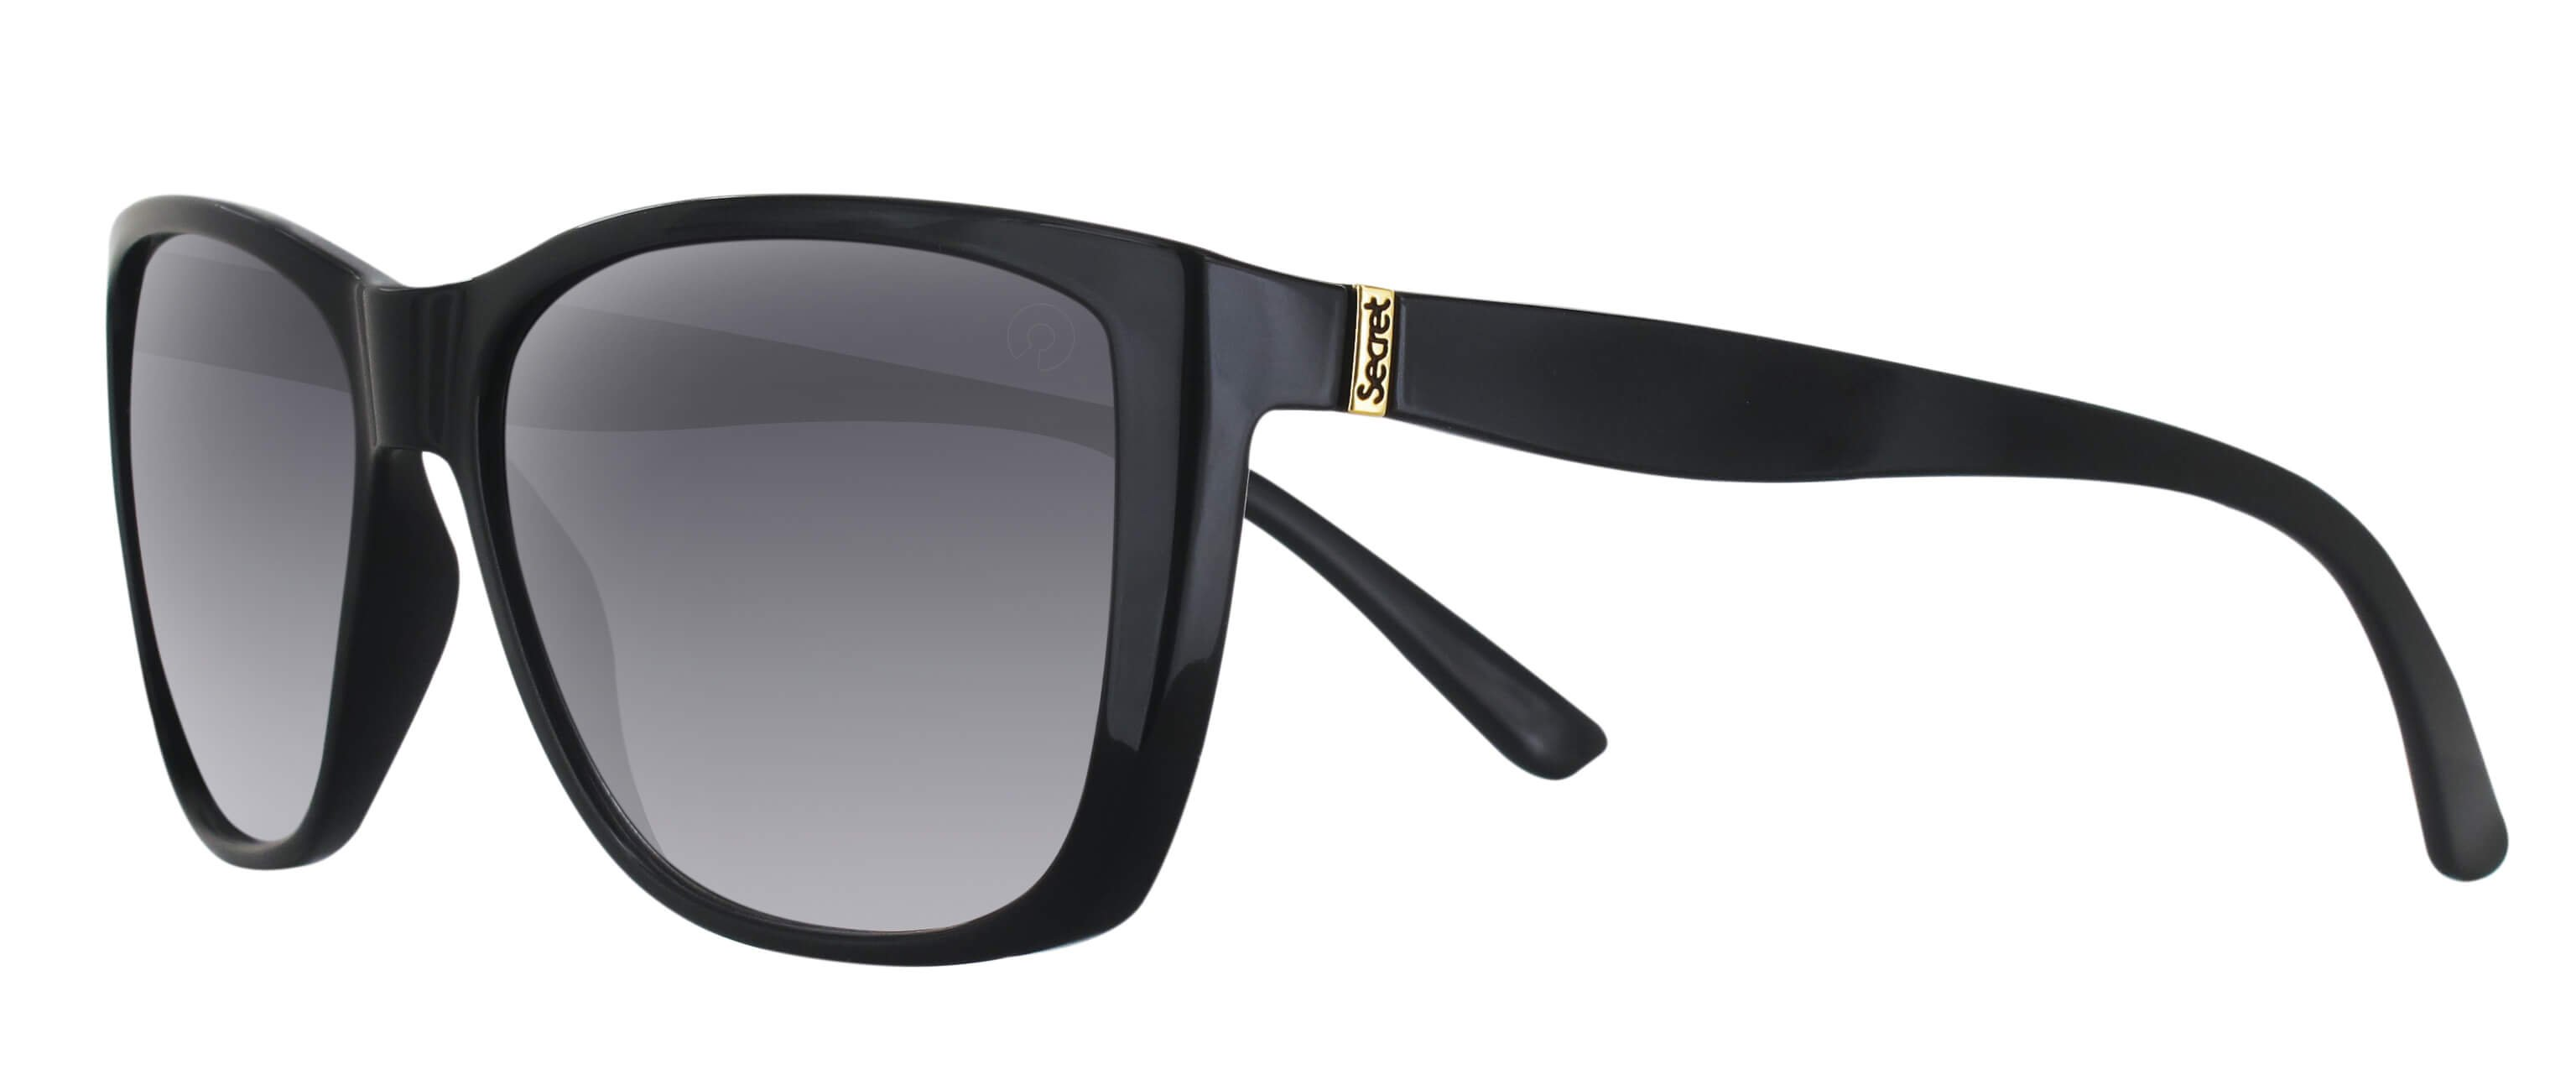 ÓC SECRET IRIS GLOSS BLACK / POLARIZED GRADIENT GRAY